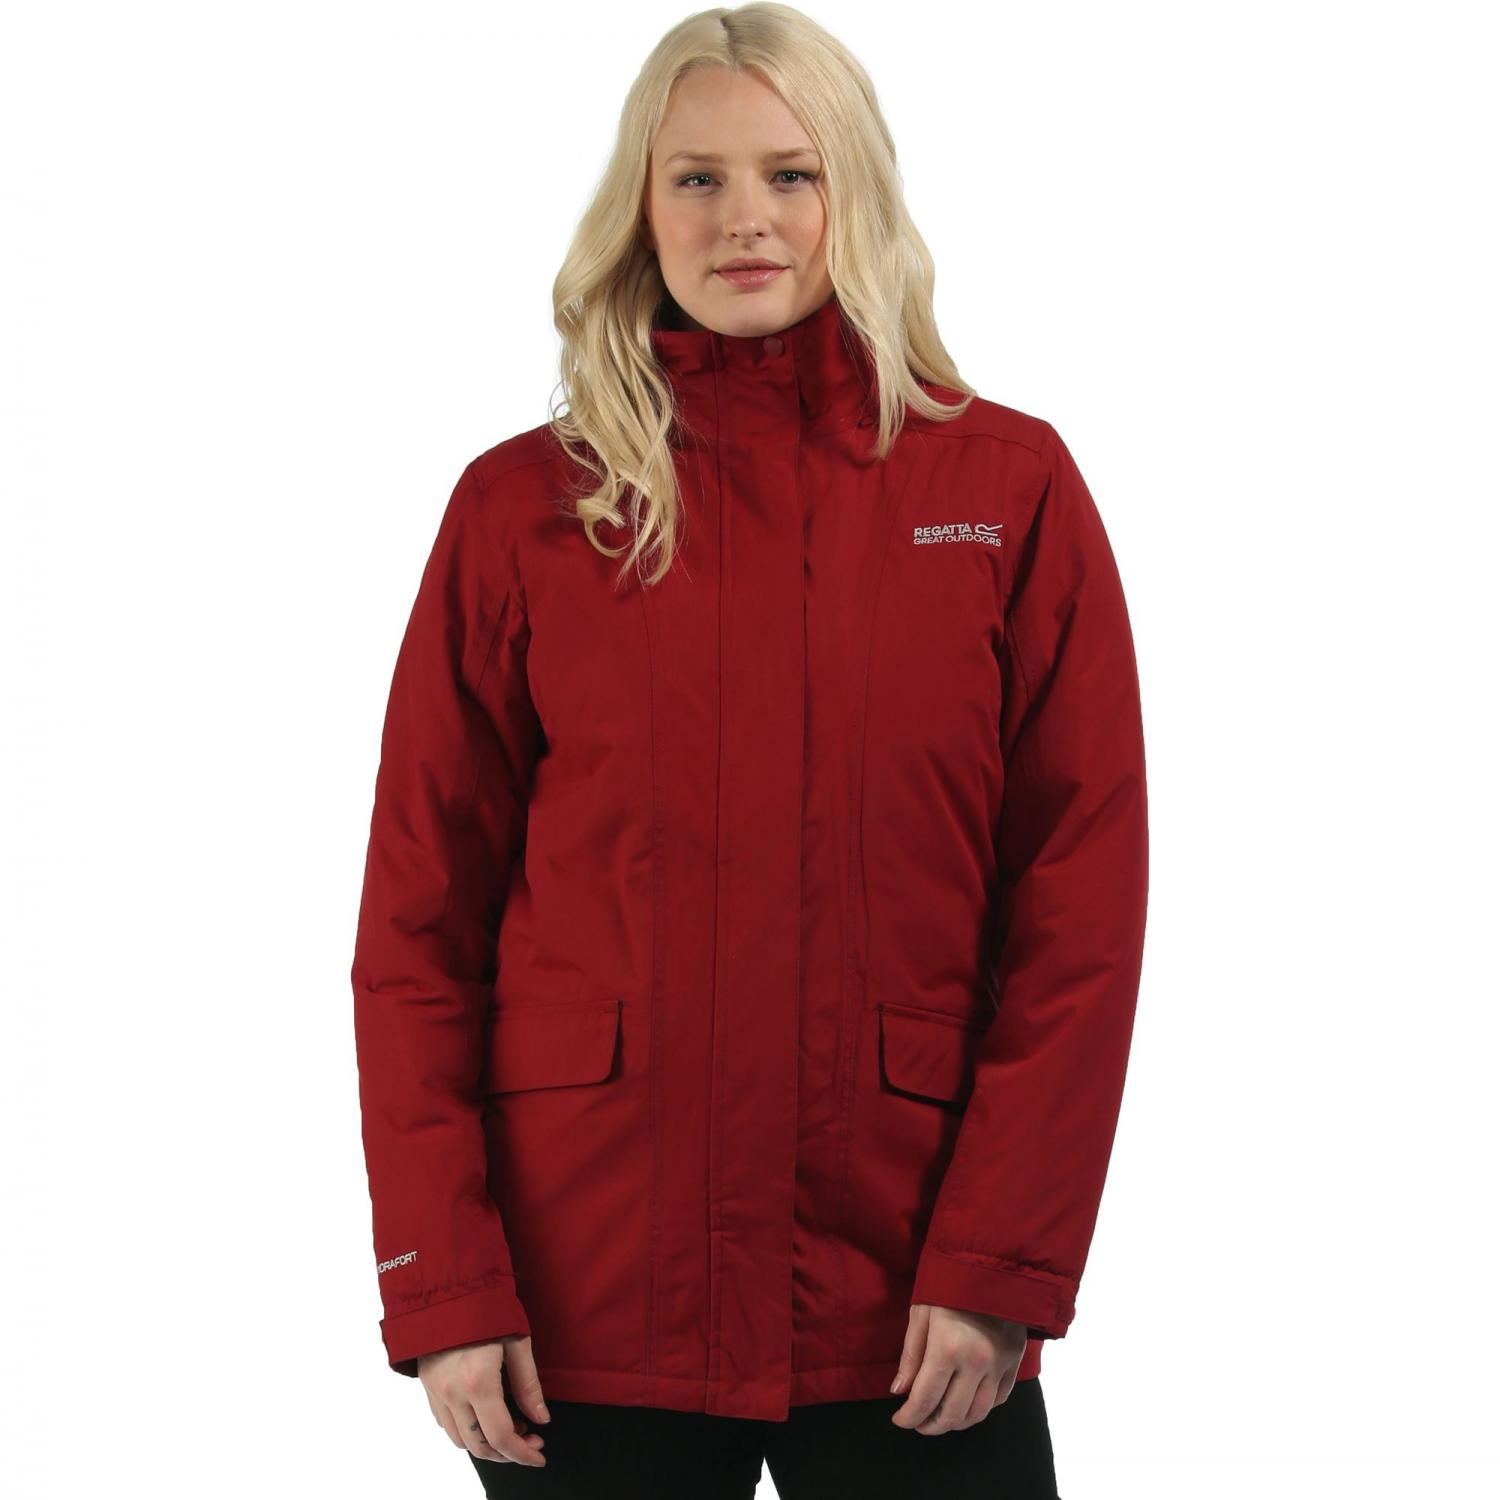 Blanchet Jacket Rhubarb Red